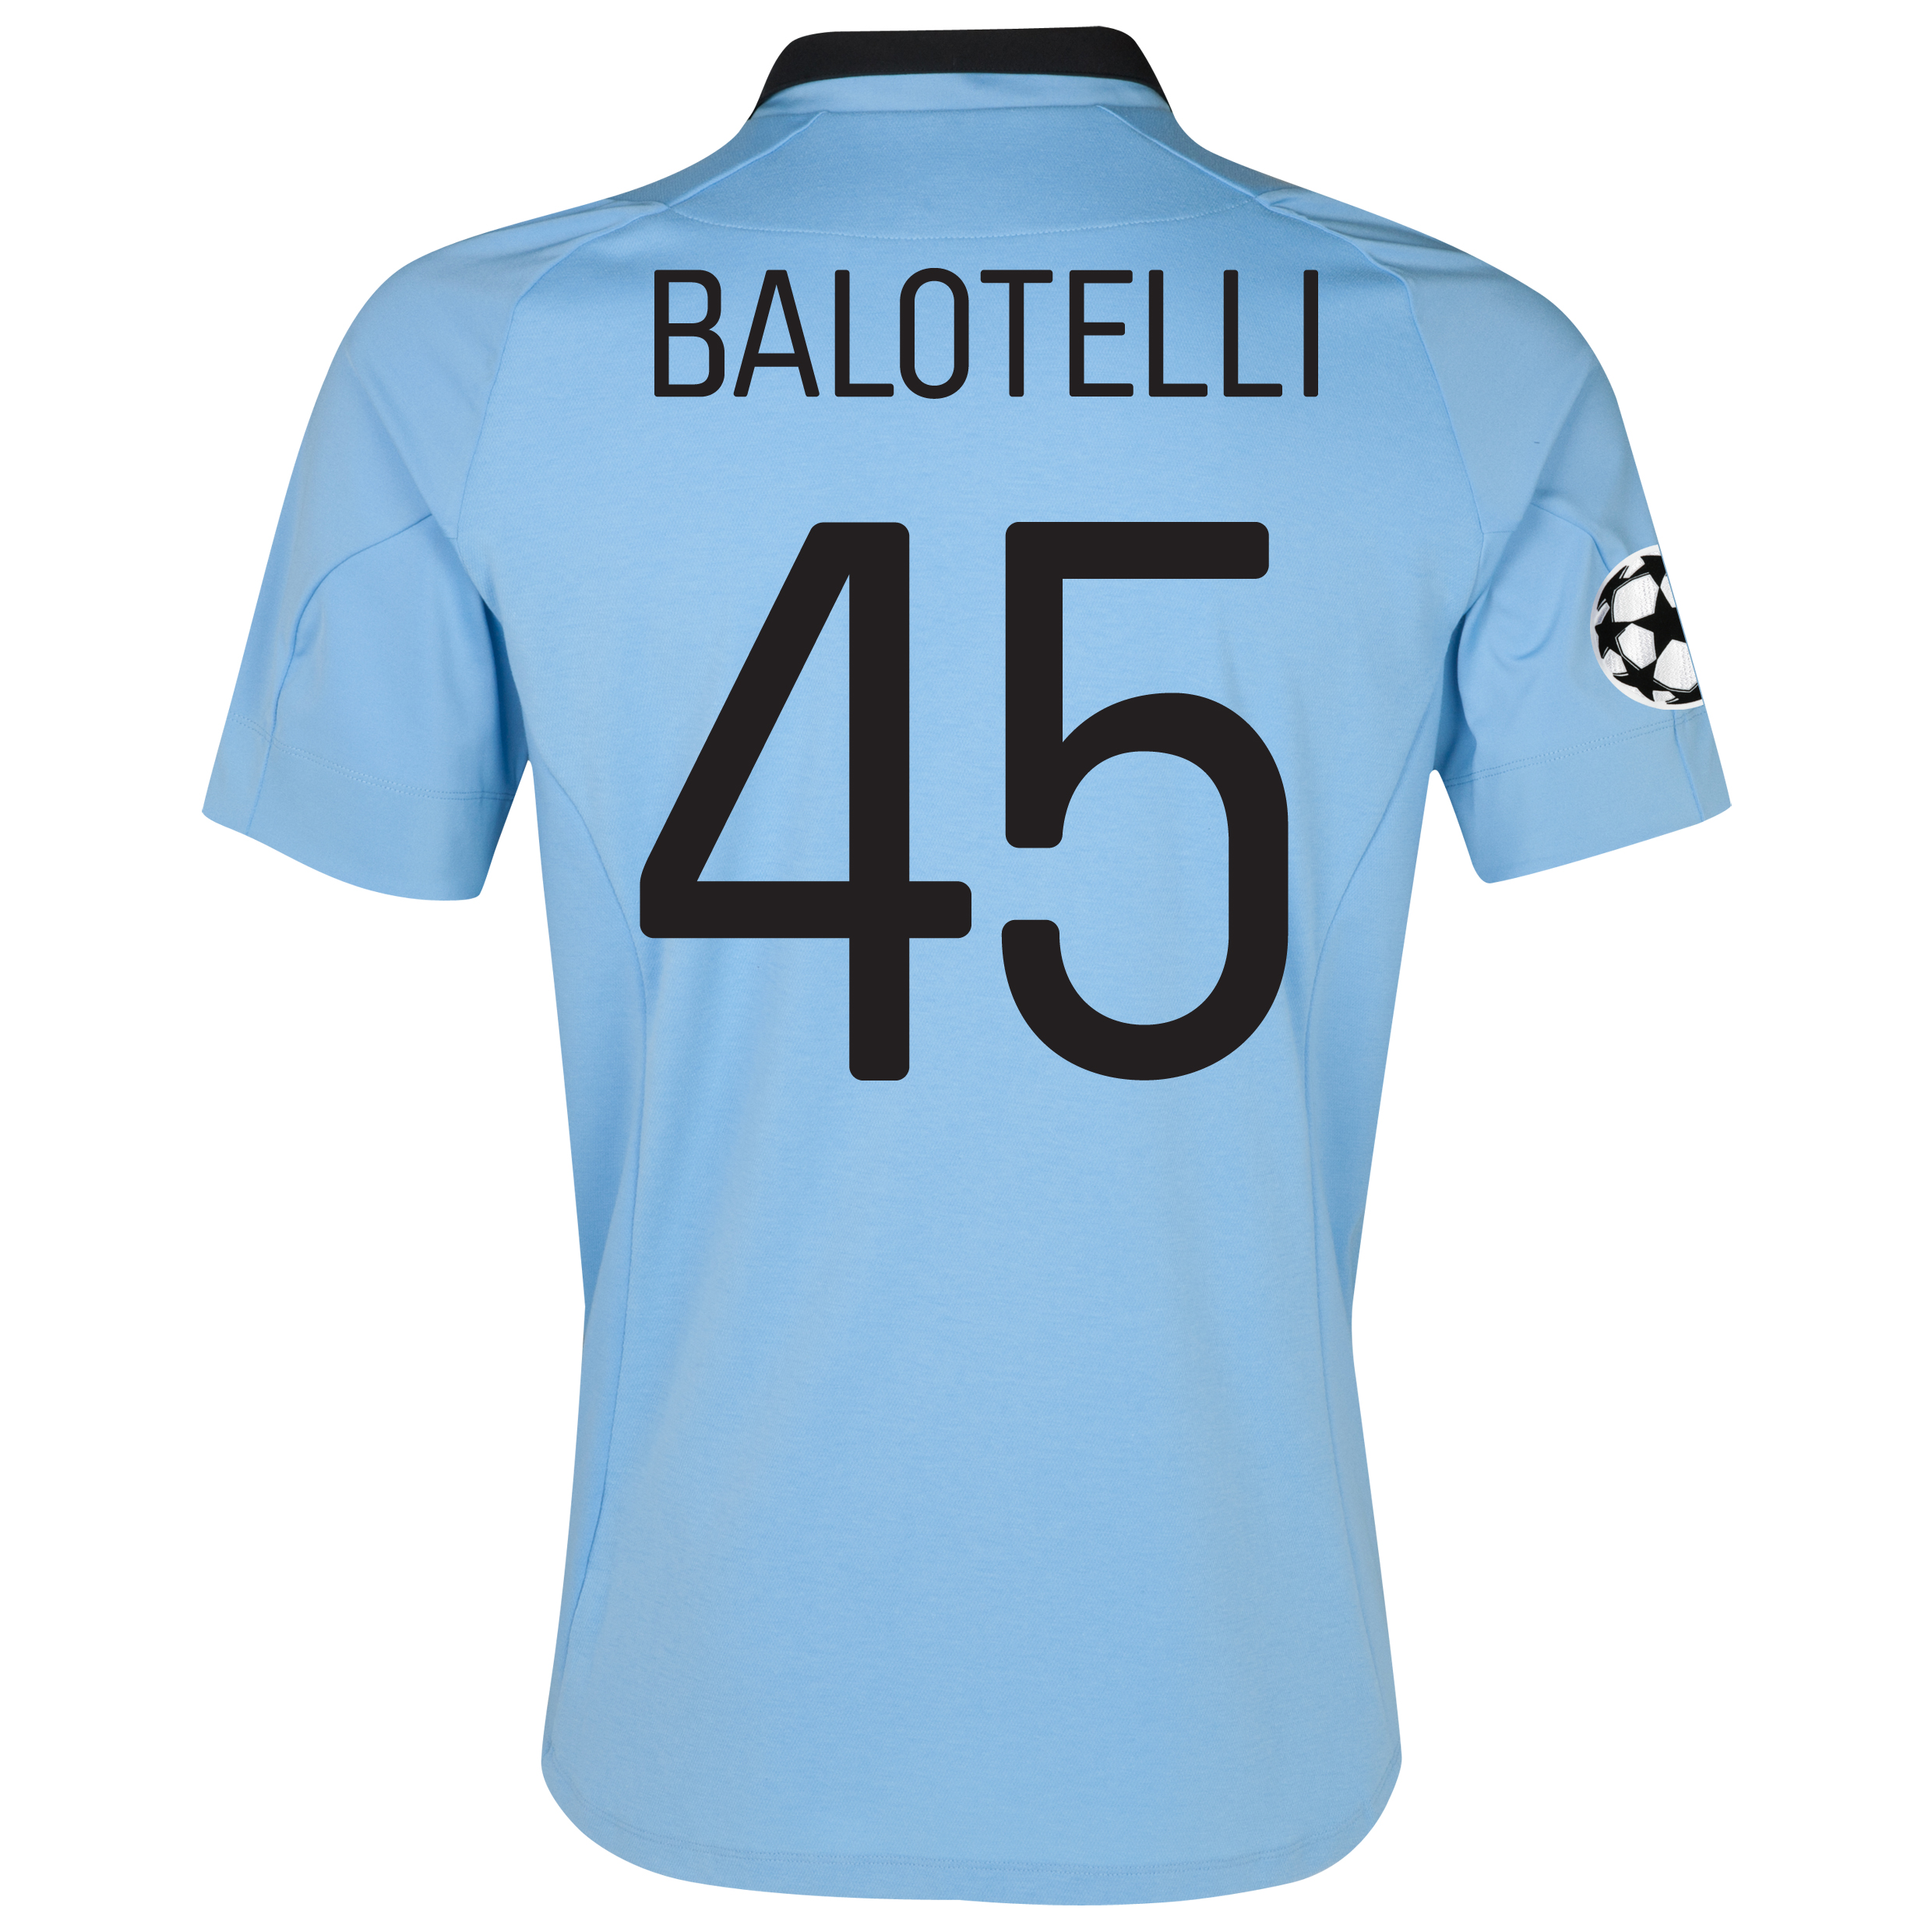 Manchester City UEFA Champions League Home Shirt 2012/13 with Balotelli 45 printing